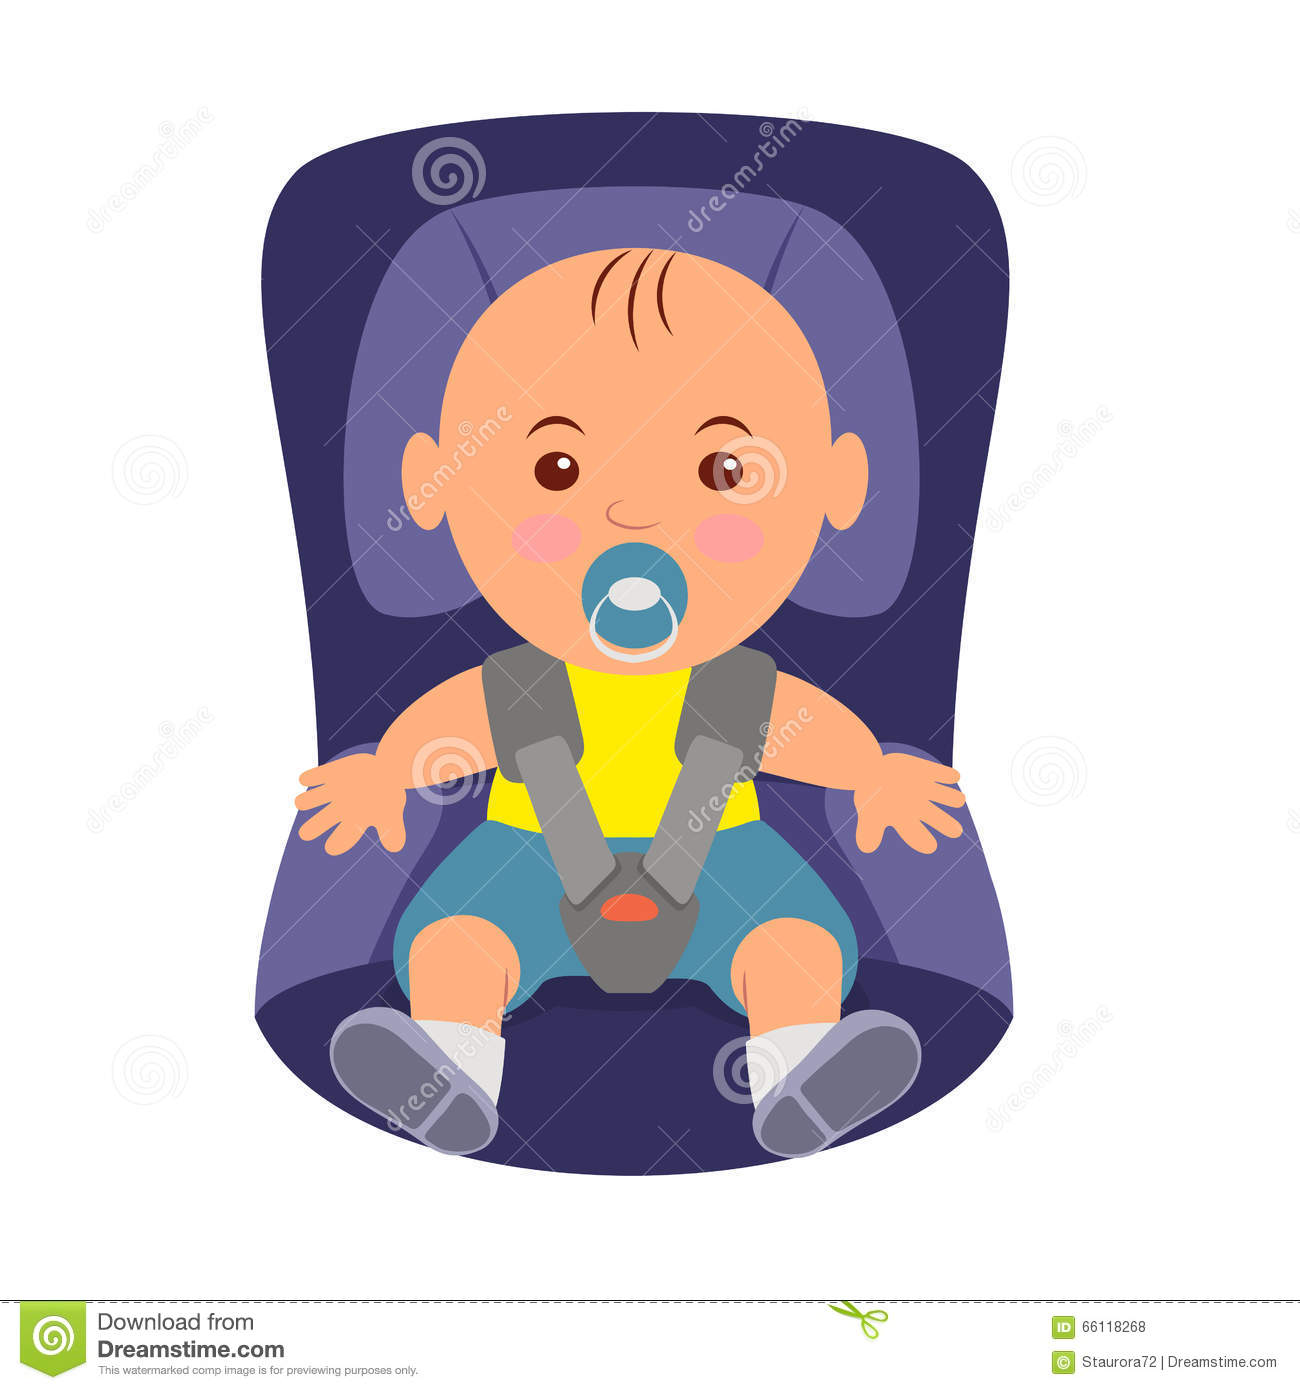 Toddler Wearing A Seatbelt In The Car Seat Illustration Of Road Safety Child